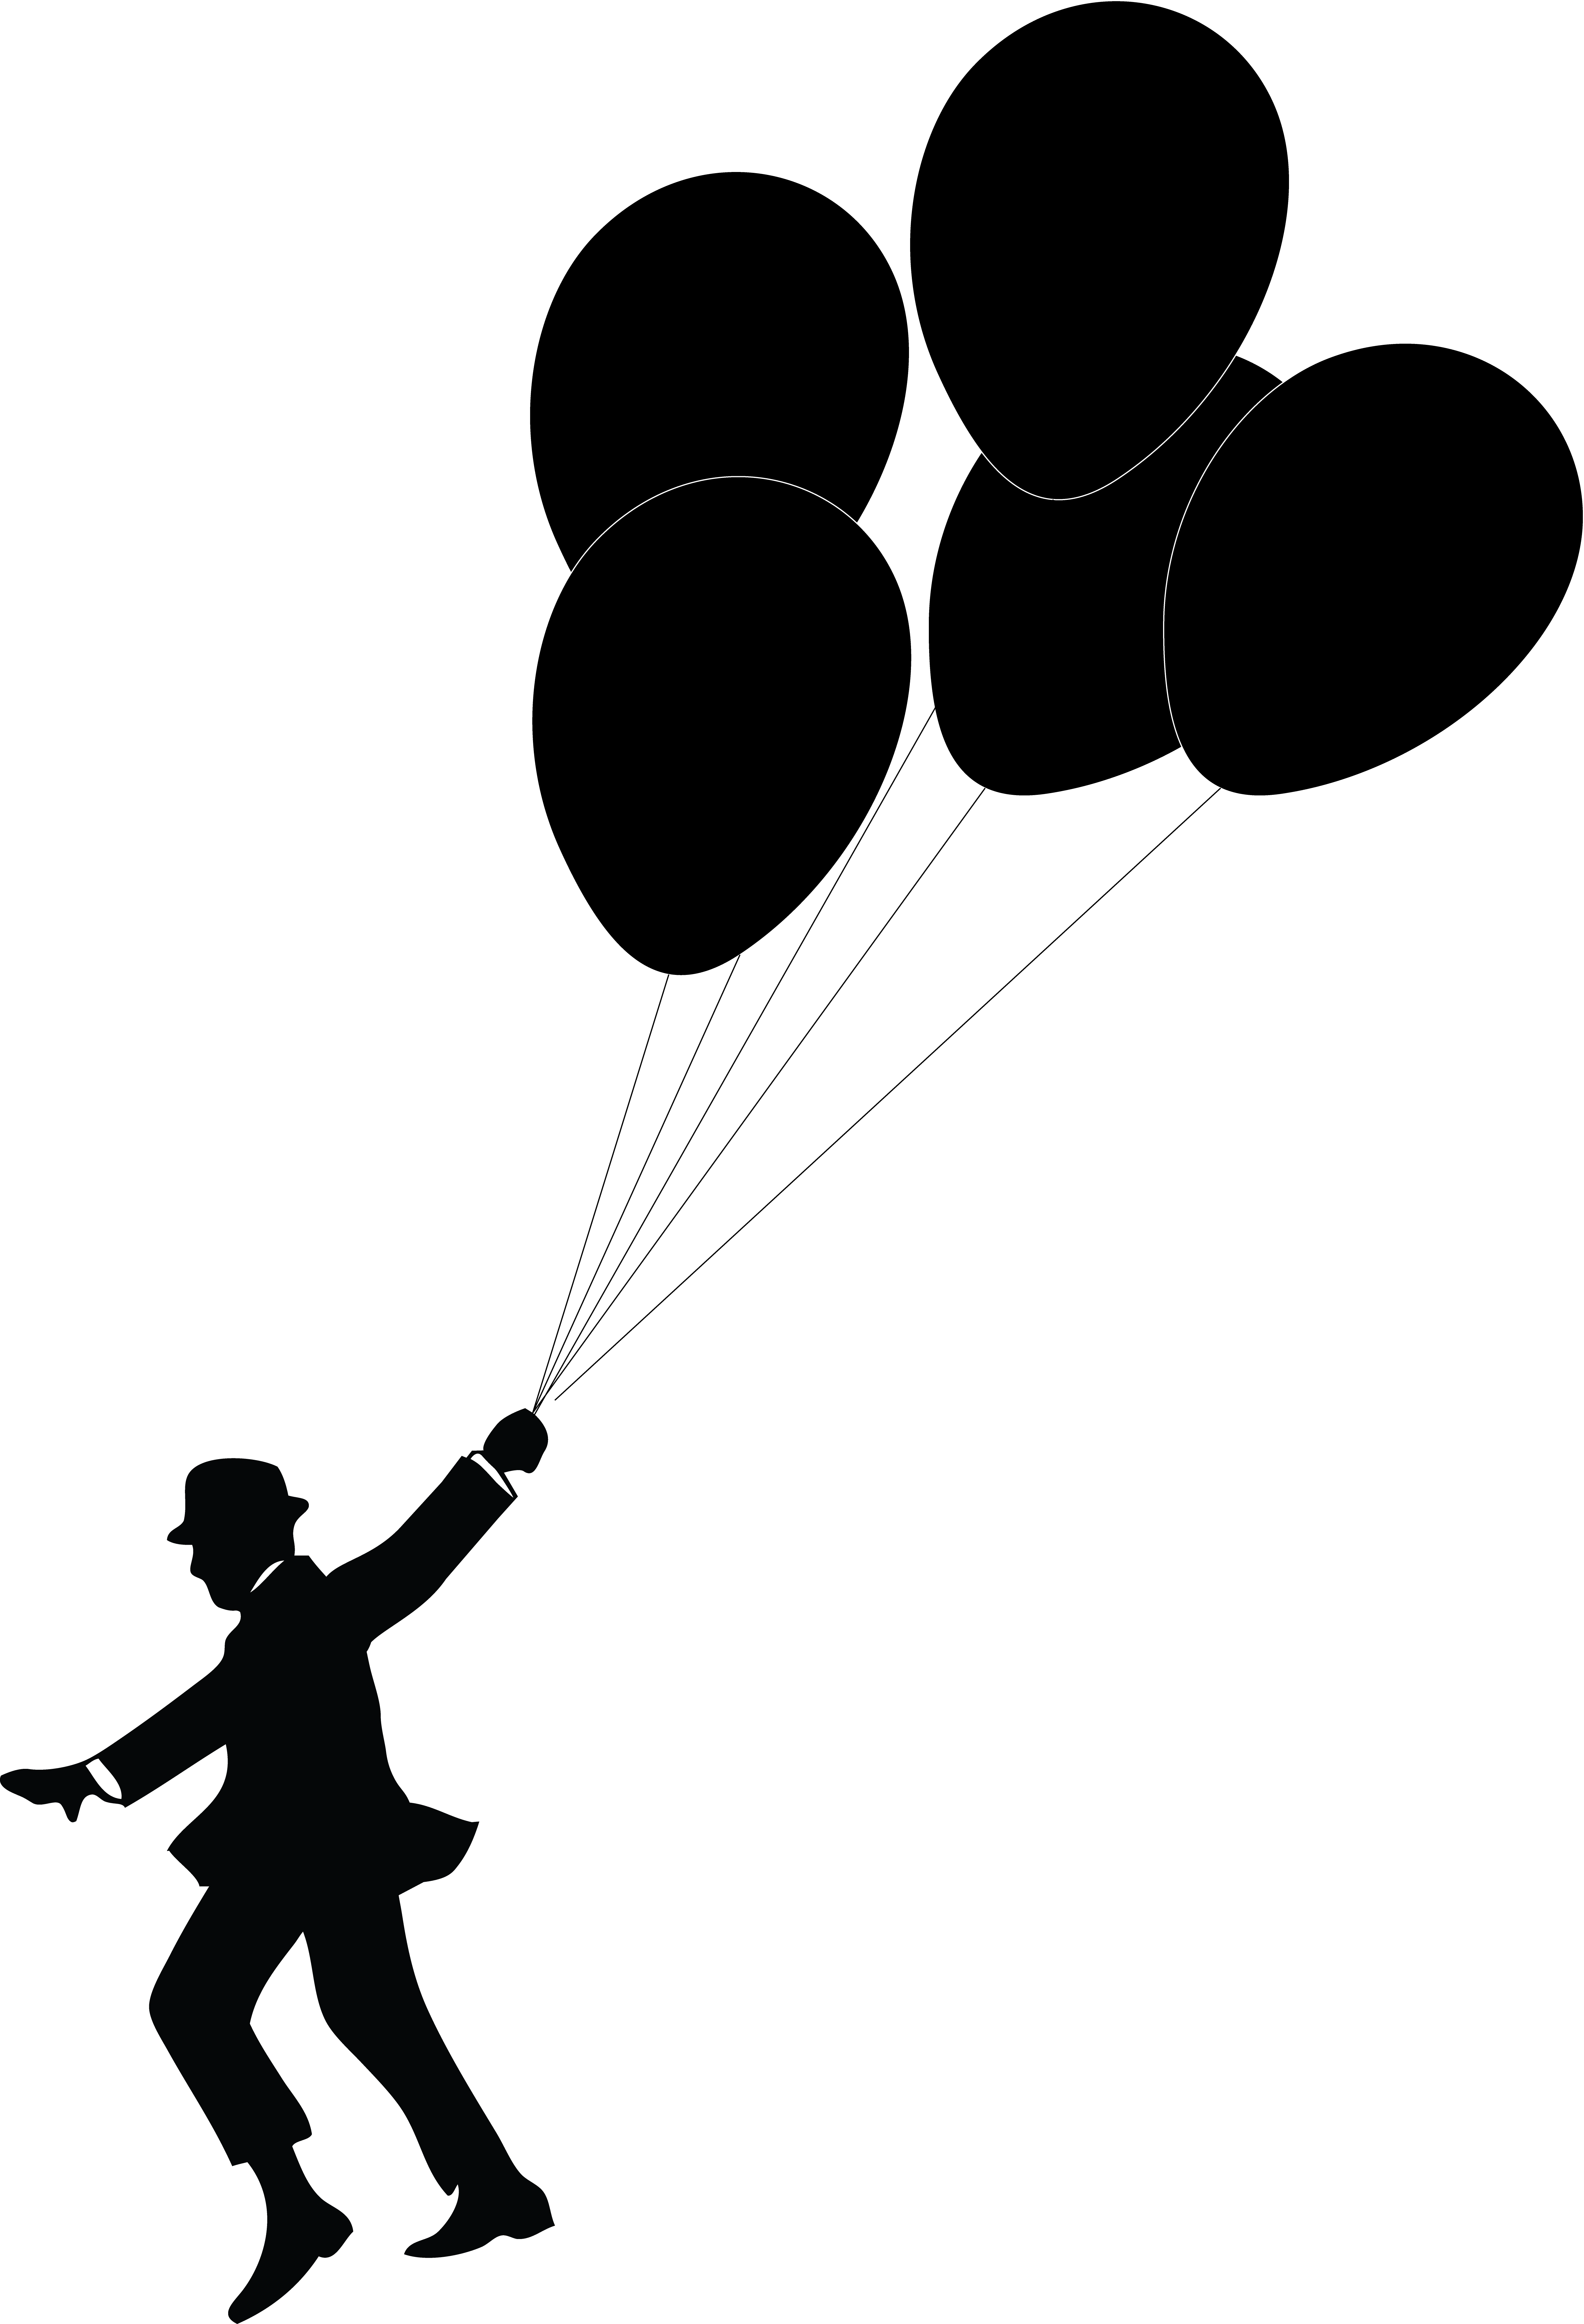 vector free download Silhouette at getdrawings com. Vector balloon